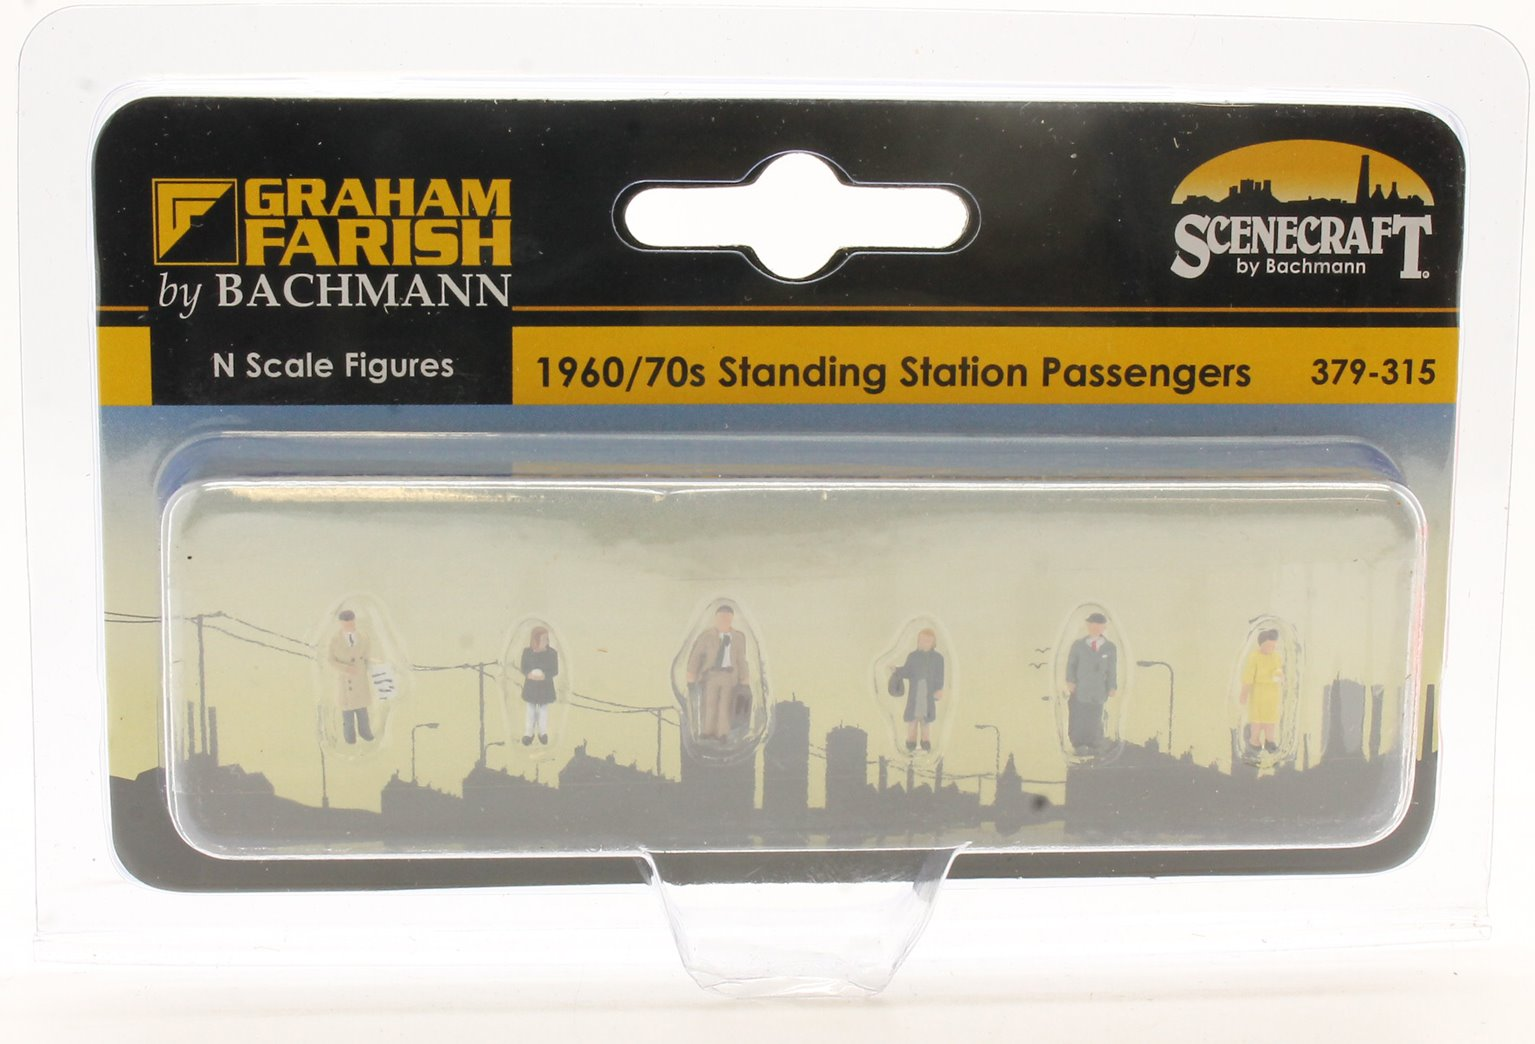 Figures 1960/70s Standing Station Passengers